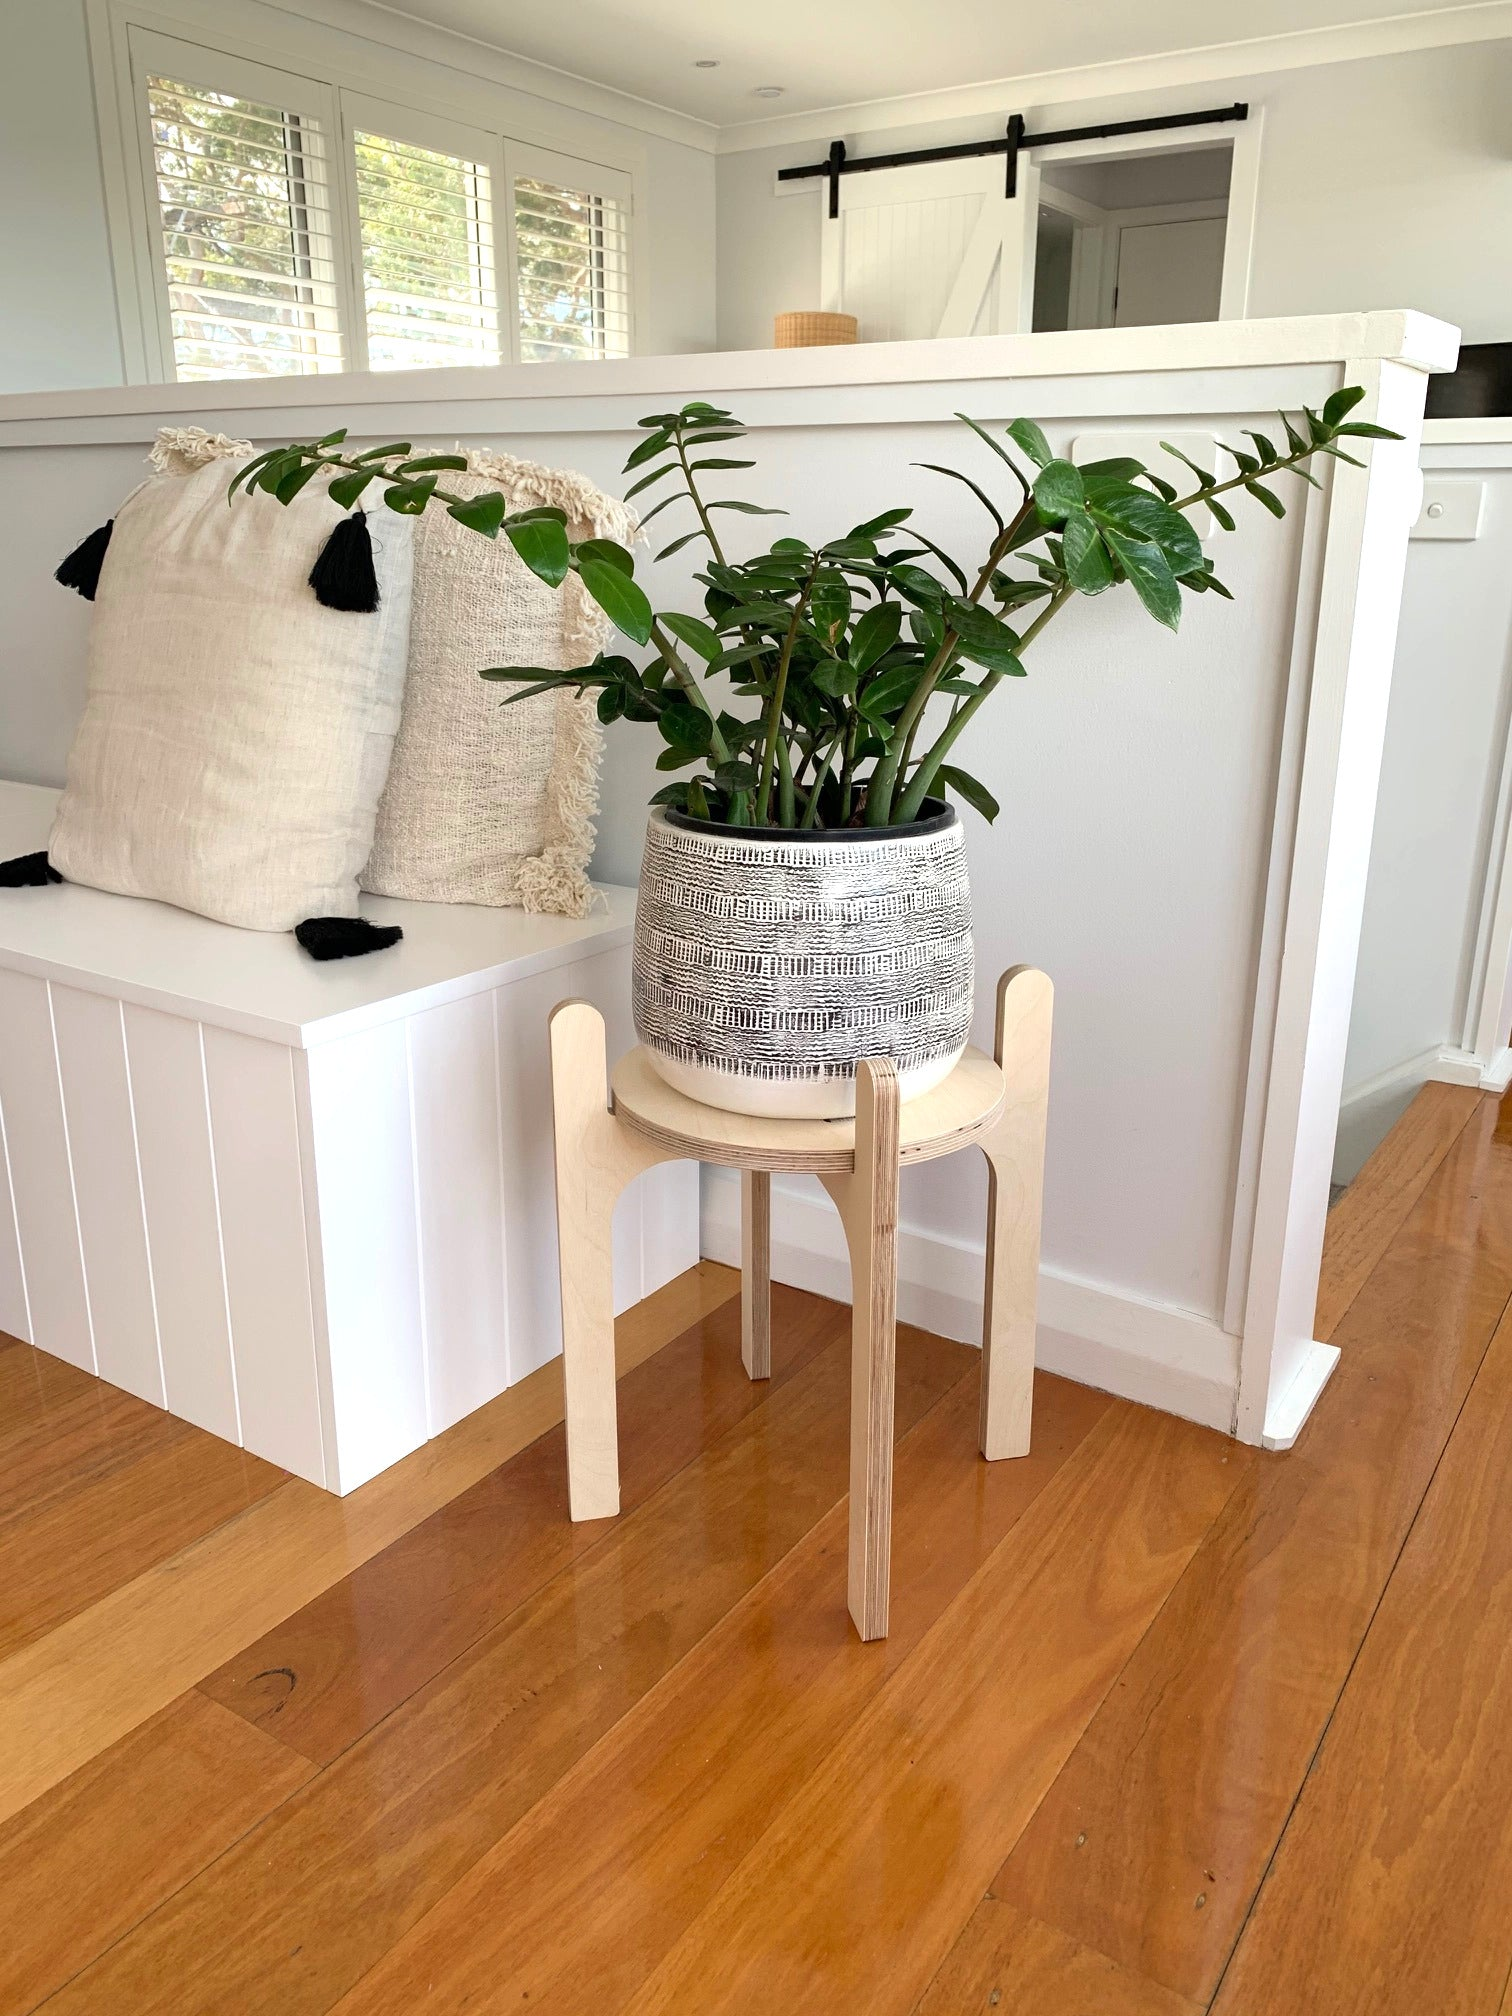 IsoKing Pot Plant Single Pot Plant Stand - Natural Birch